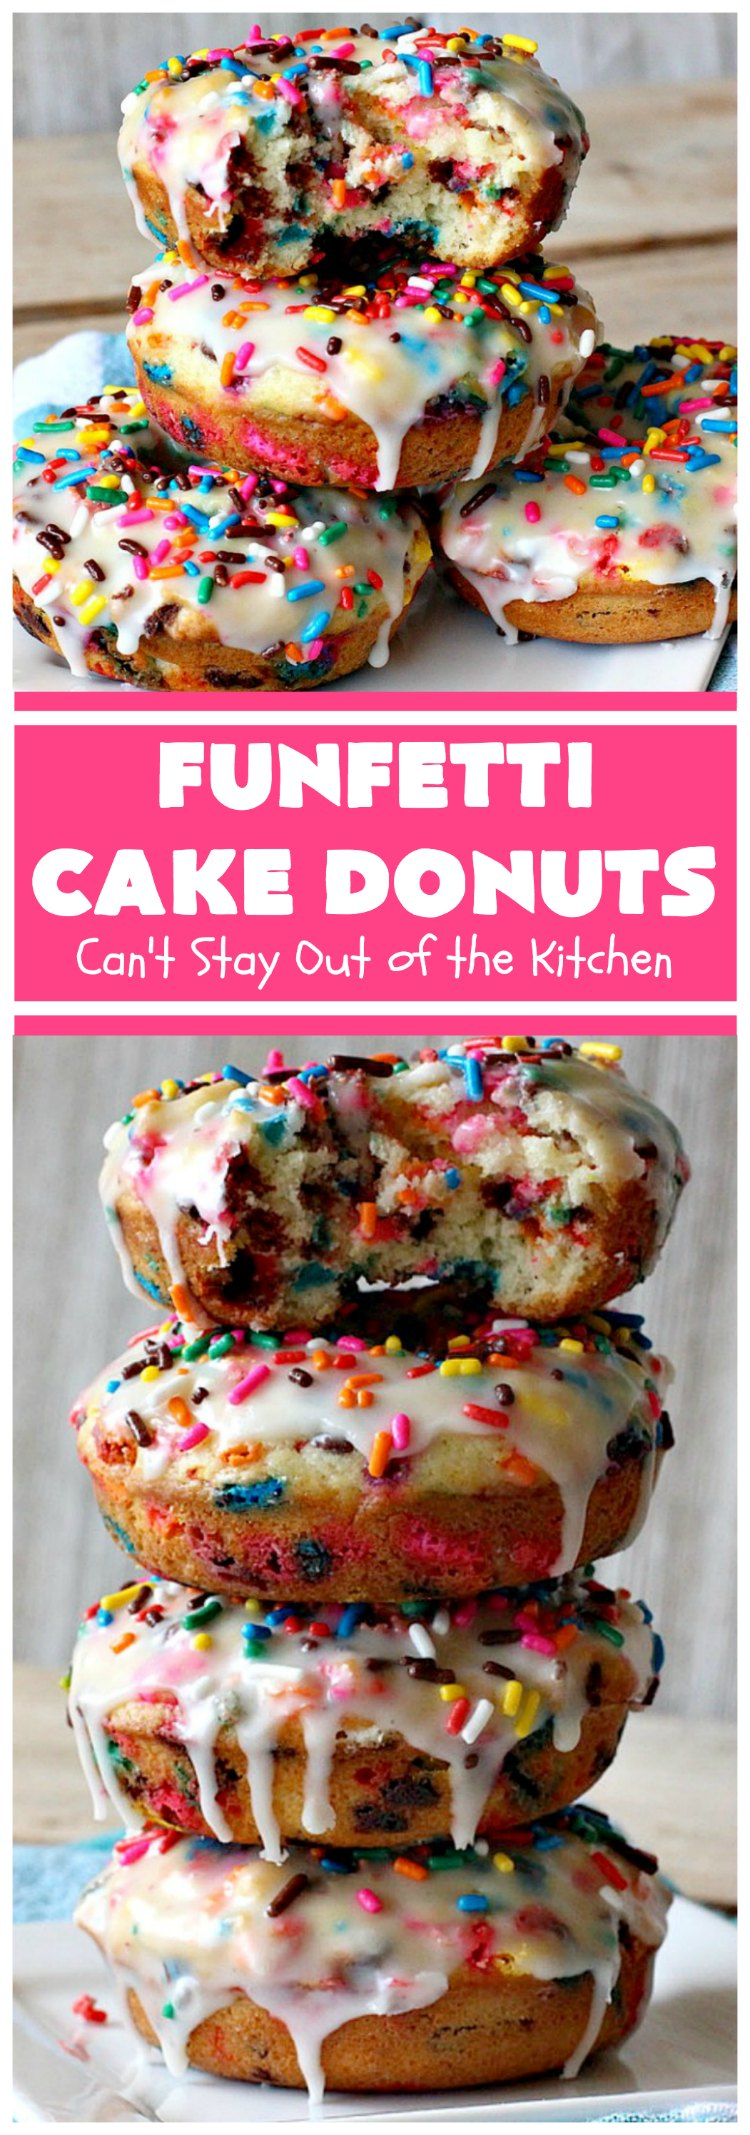 Funfetti Cake Donuts | Can't Stay Out of the Kitchen